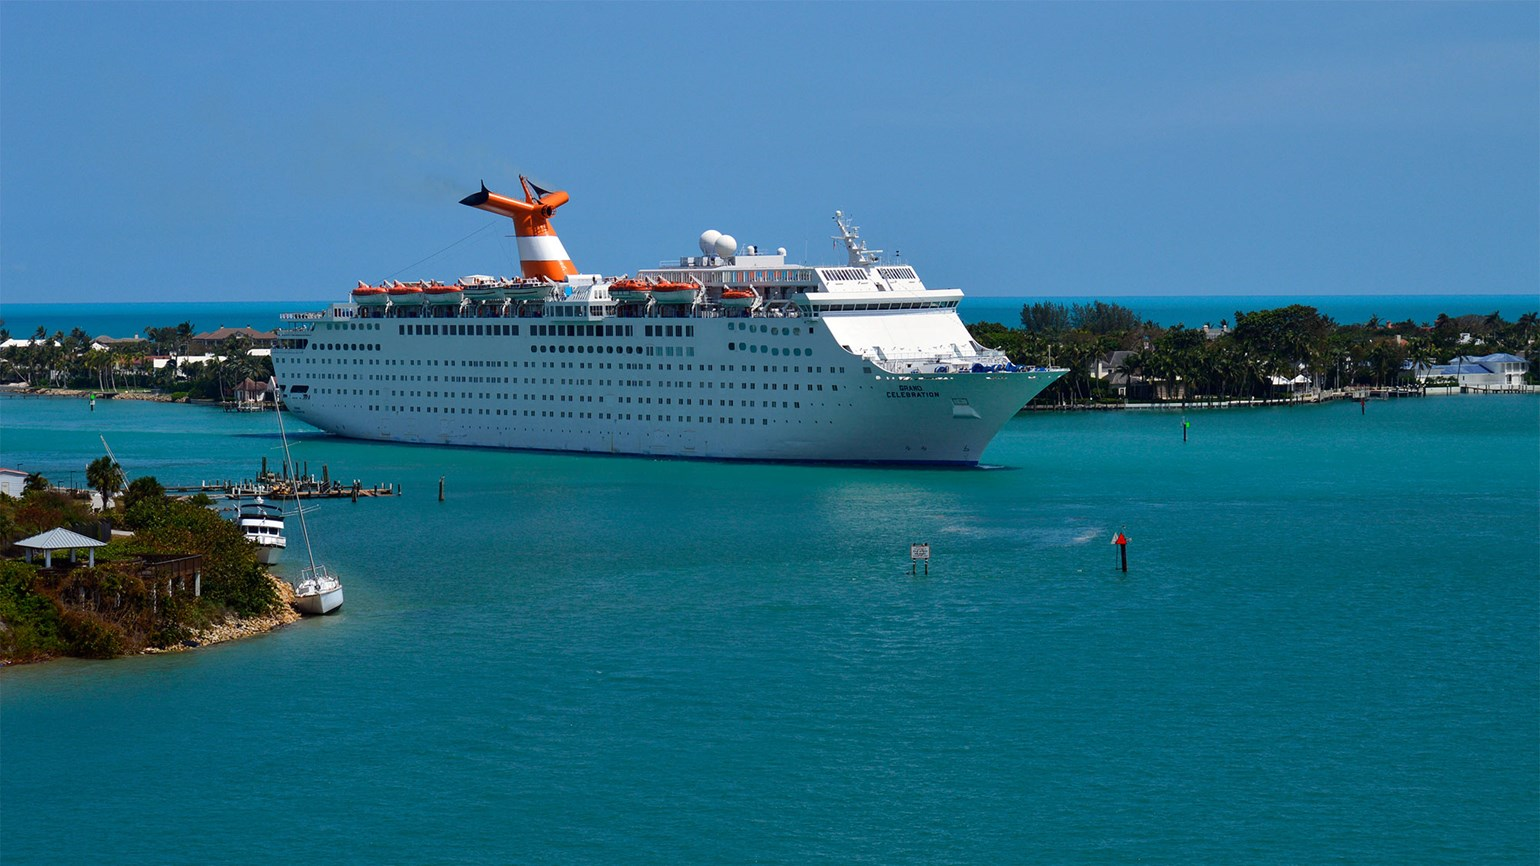 Cruise ship chartered for relief mission in St. Thomas